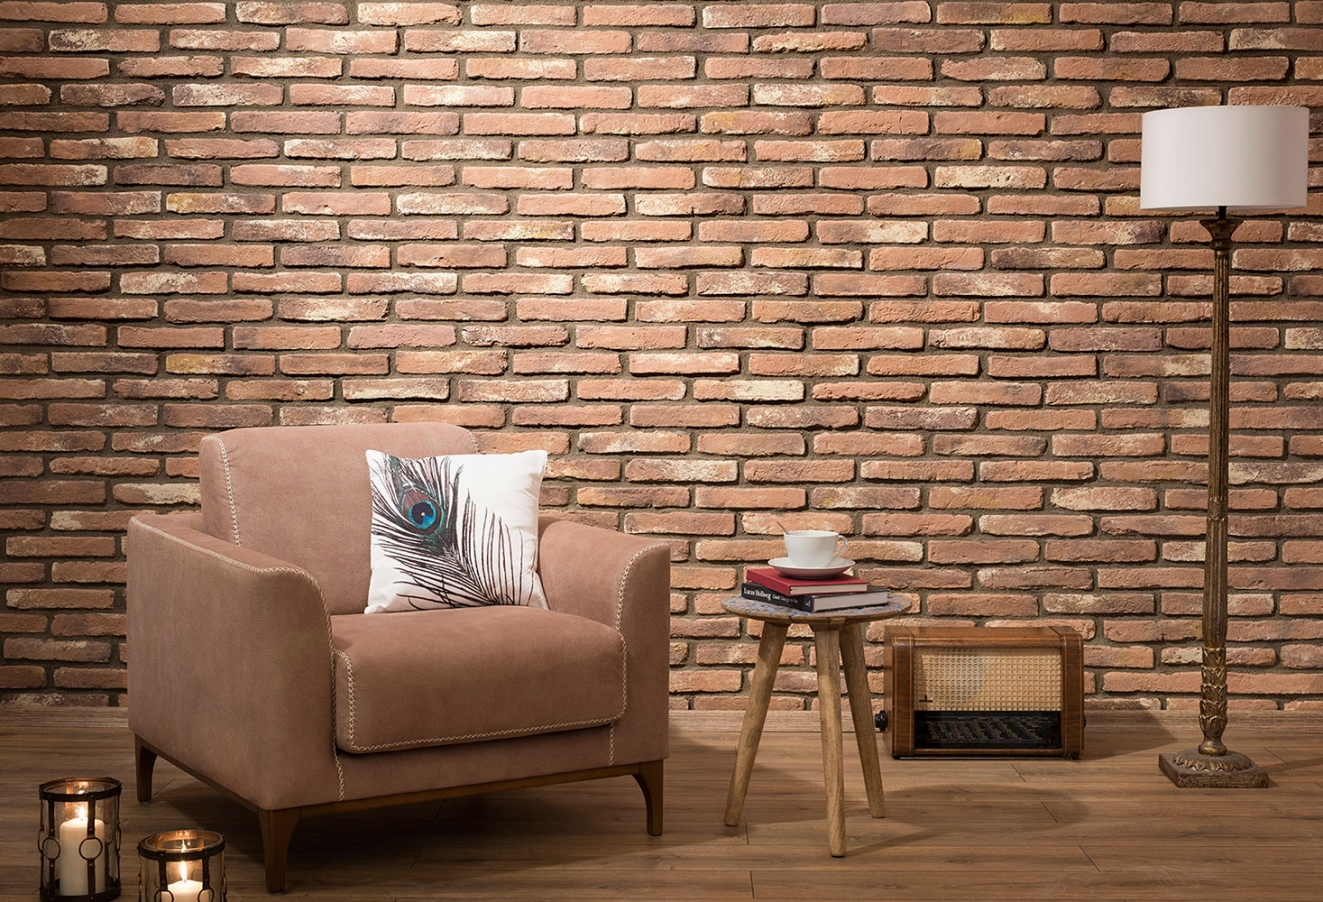 Ferrara manufactured brick cladding